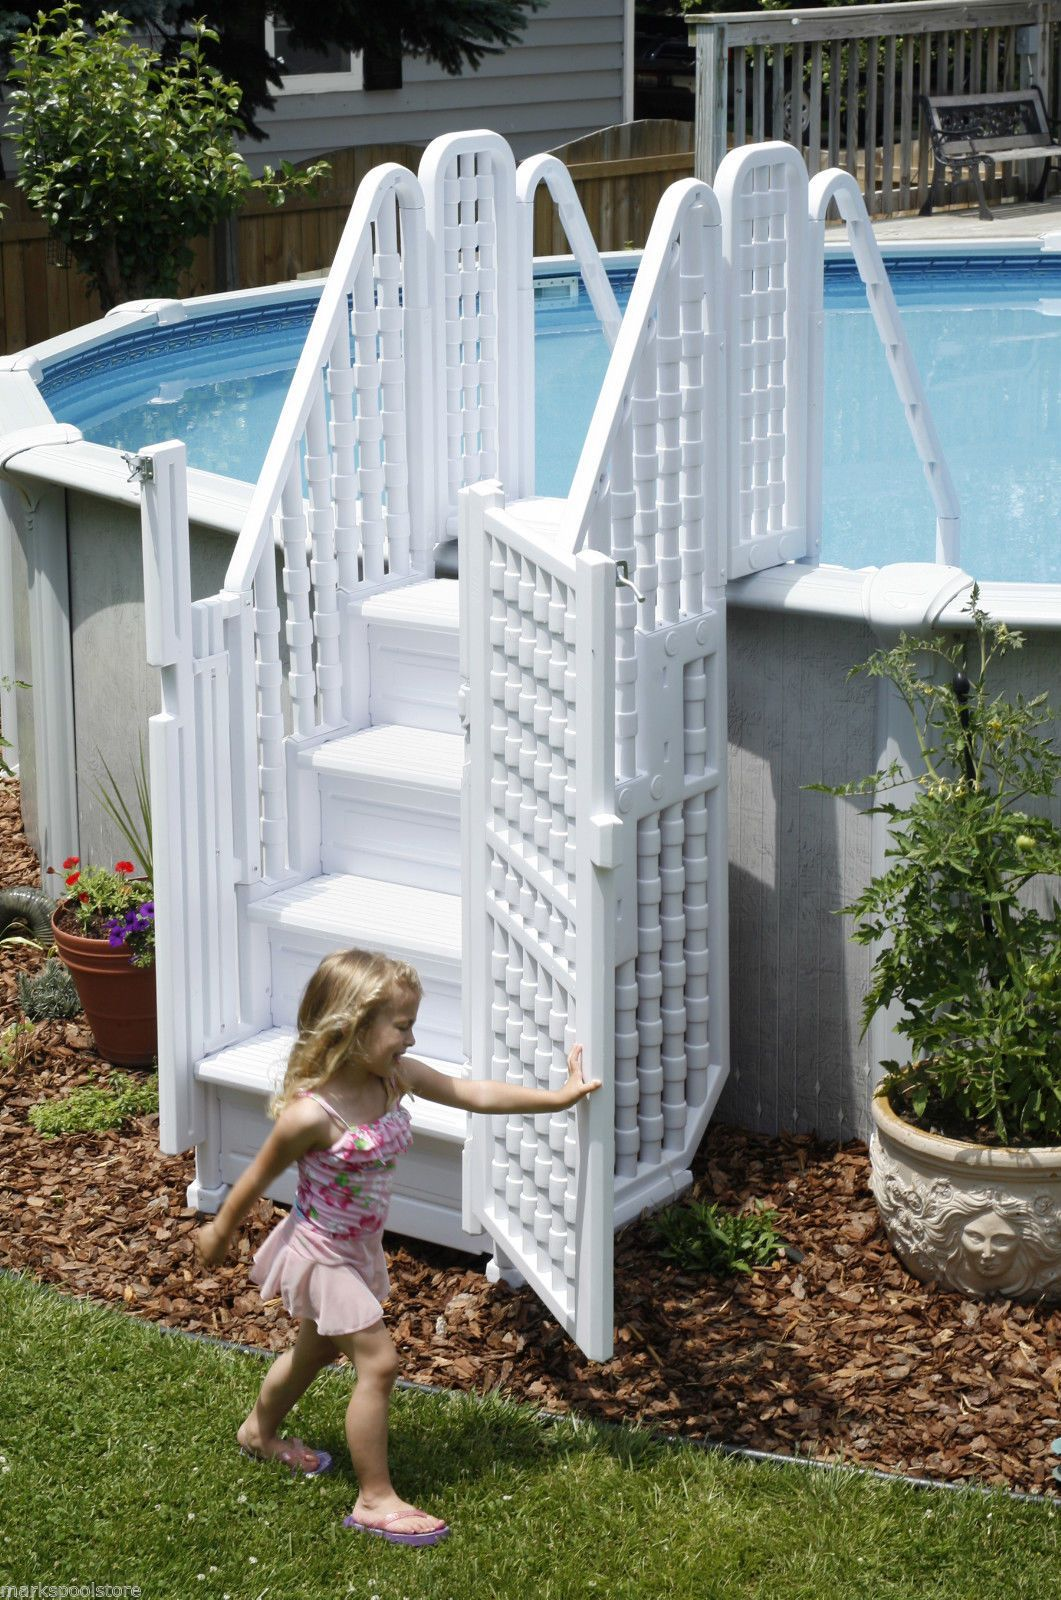 Easy Pool Step Complete Entry System With Gate For Above Ground Swimming Pools Swimming Pool